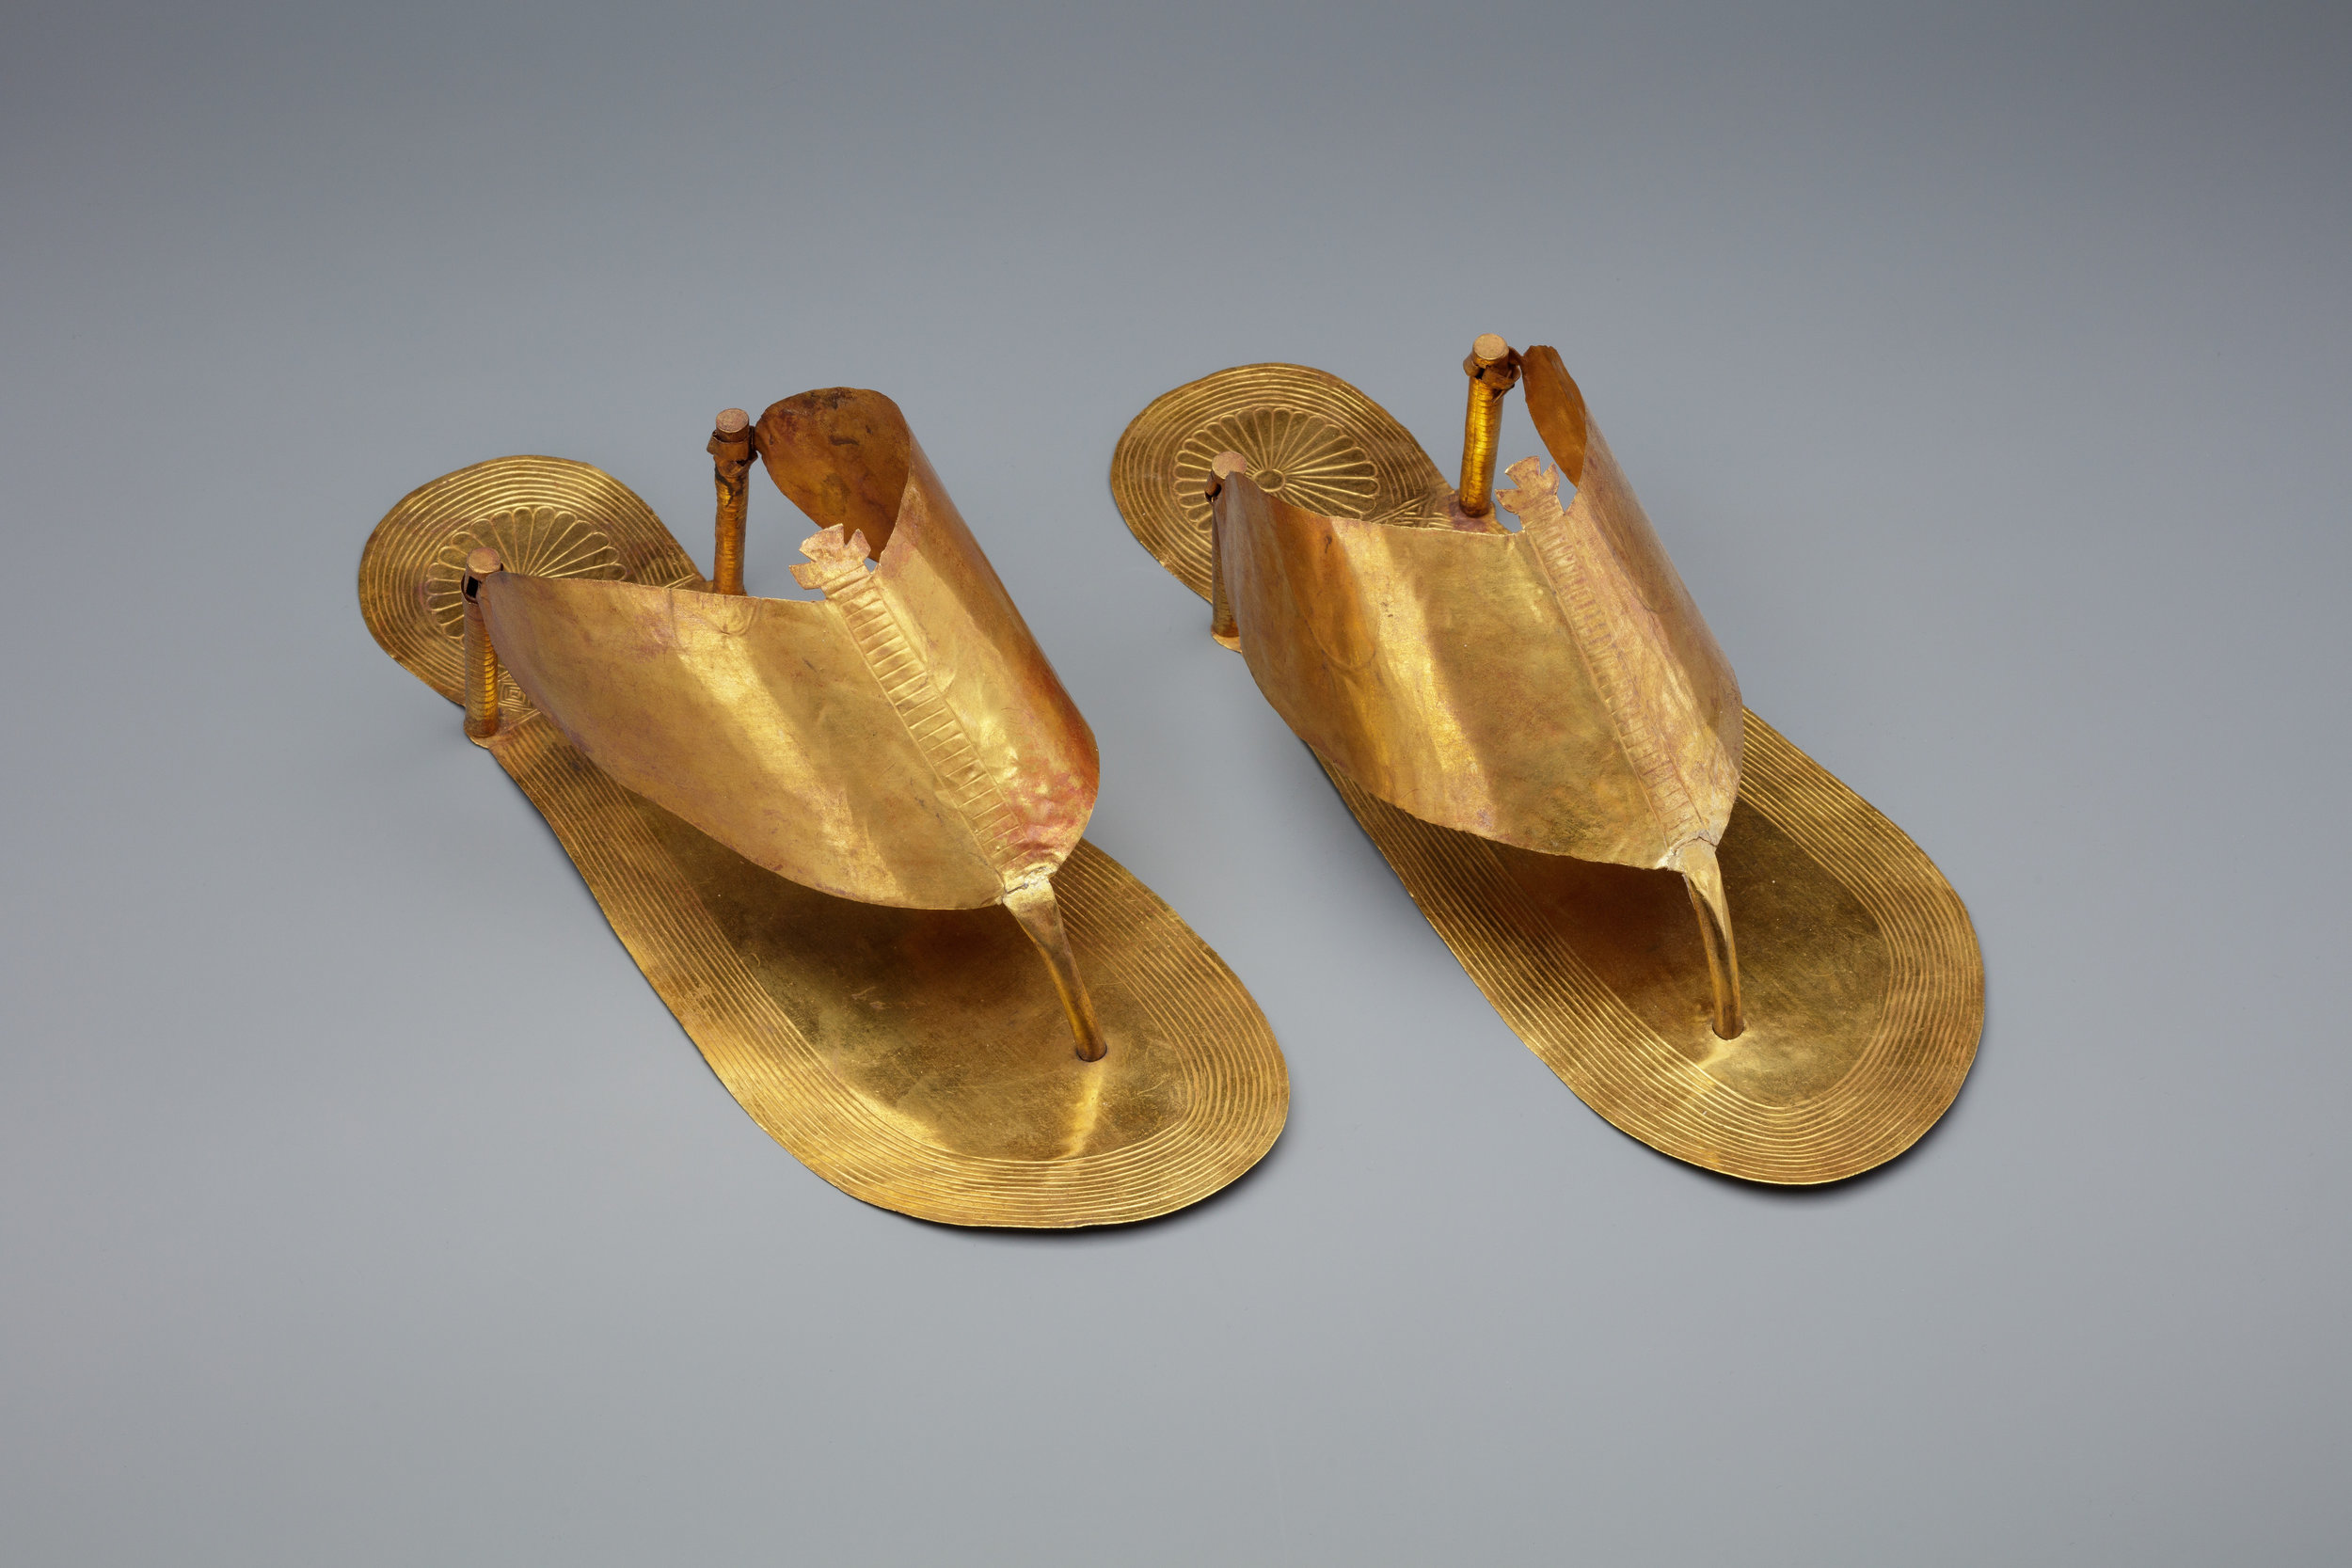 let's slip into our golden shoes and go about our business. - Gold sandles ca. 1479–1425 B.C., which probably weren't meant for everyday wear. Courtesy of the Metropolitan Museum of Art.